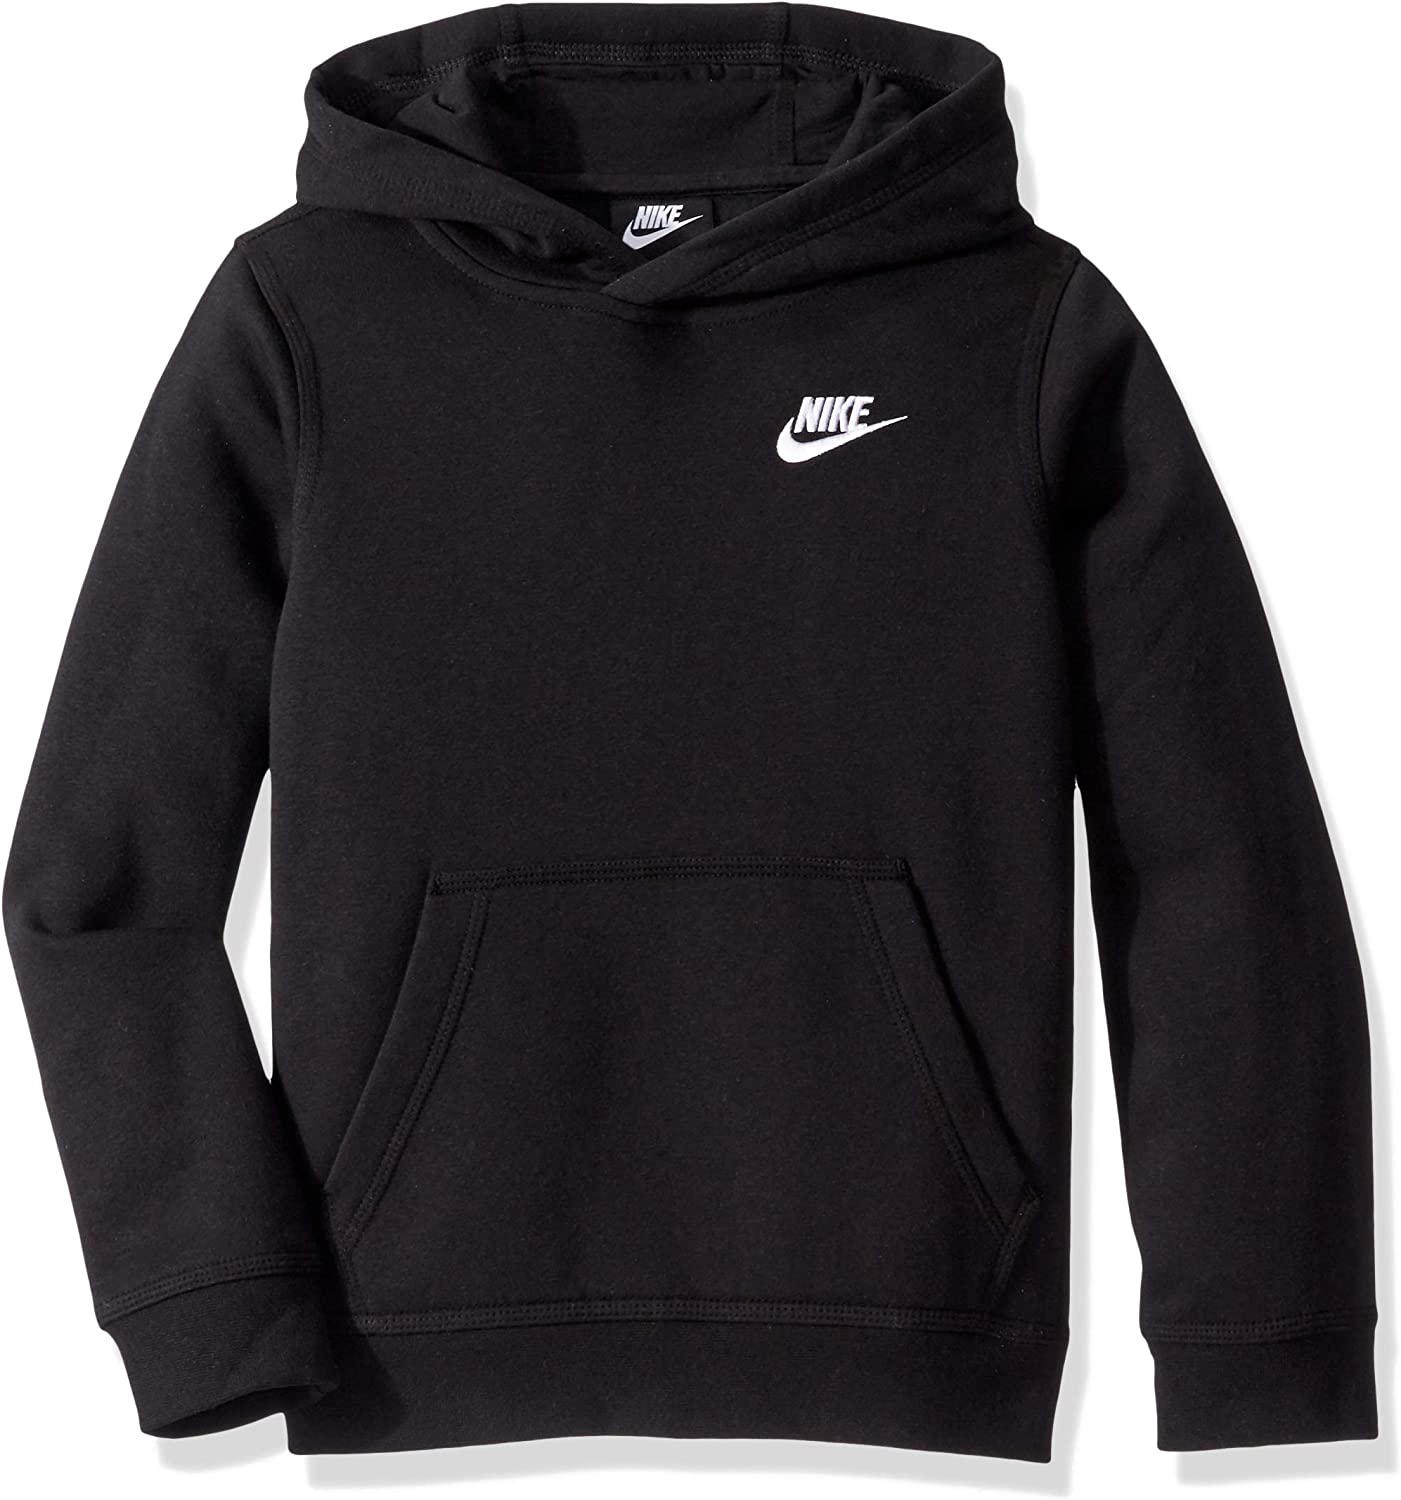 Nike boys Boy's Nsw Pull Over Hoodie Club